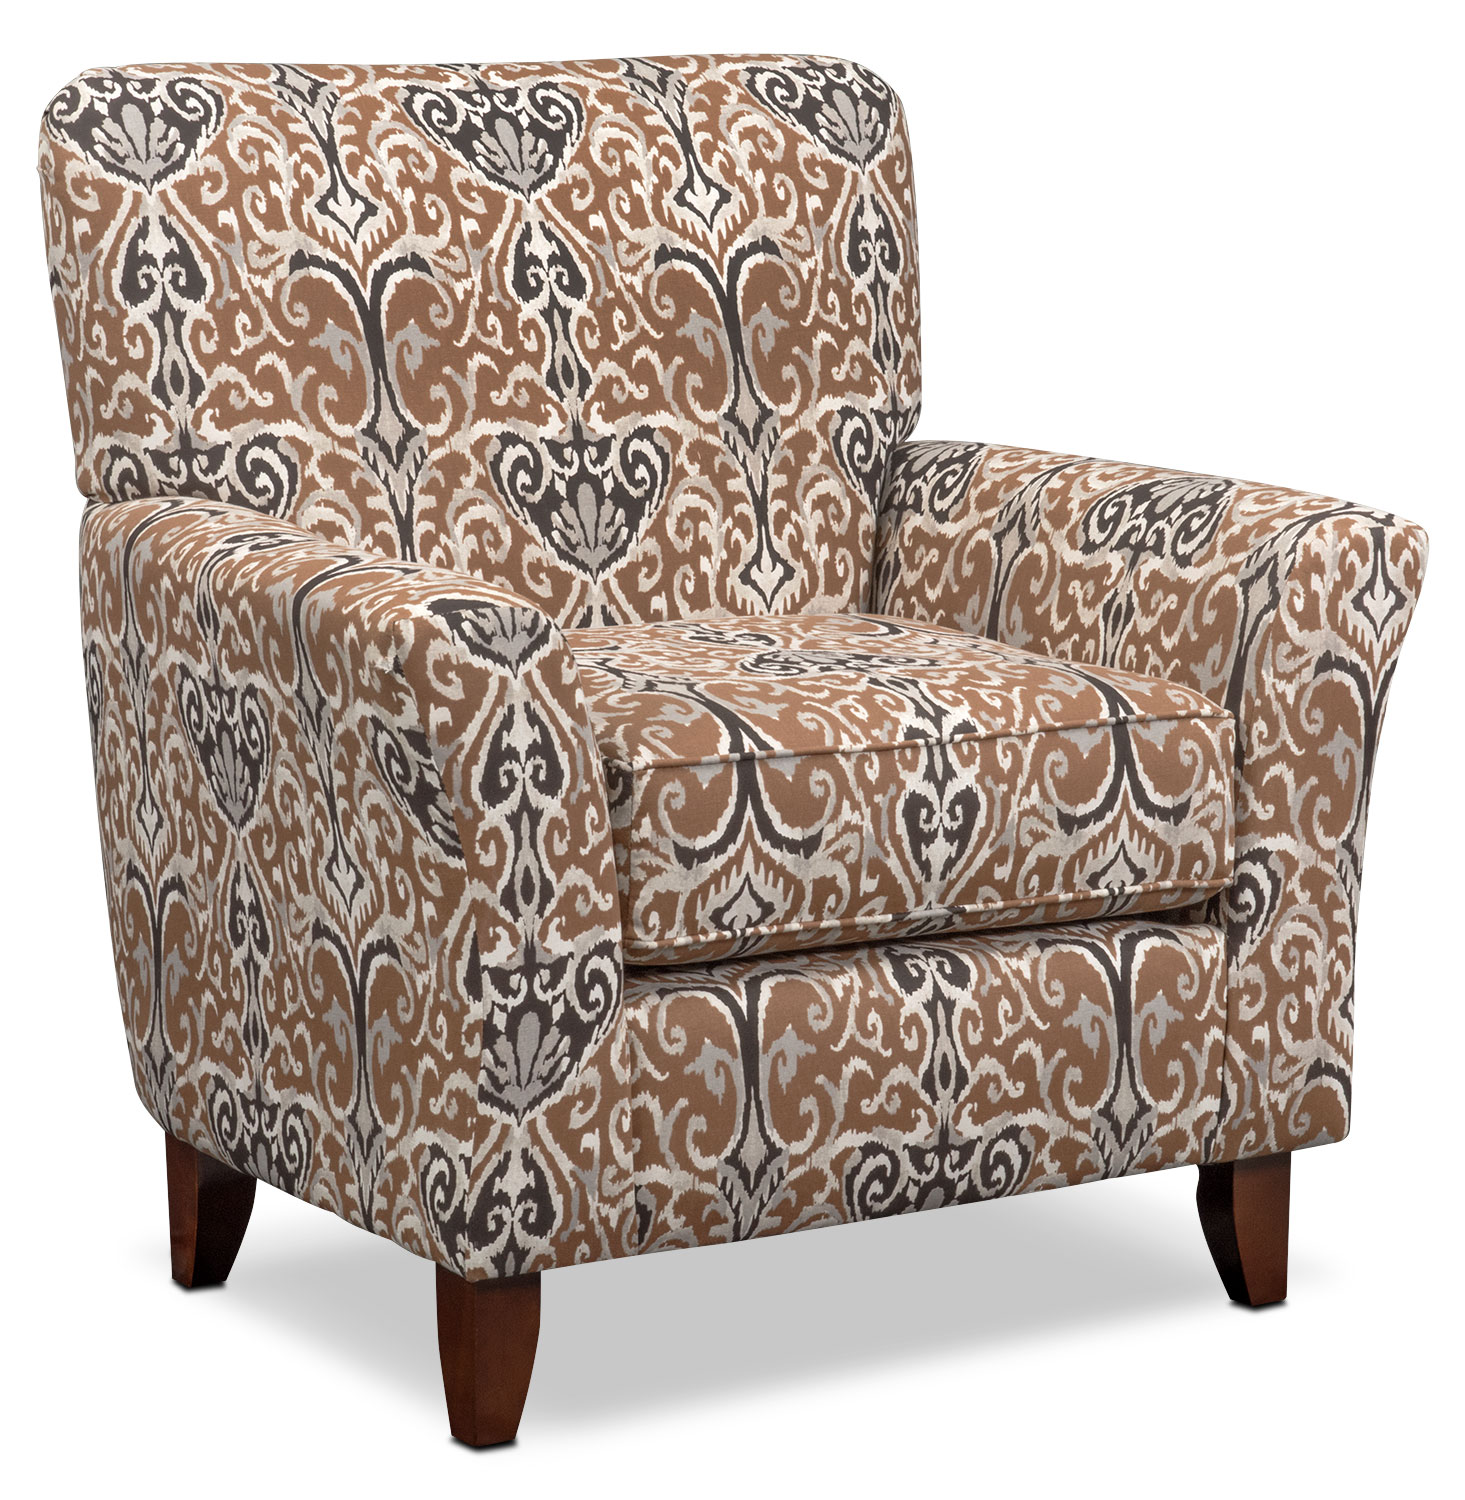 Carla Accent Chair - Chocolate Multi